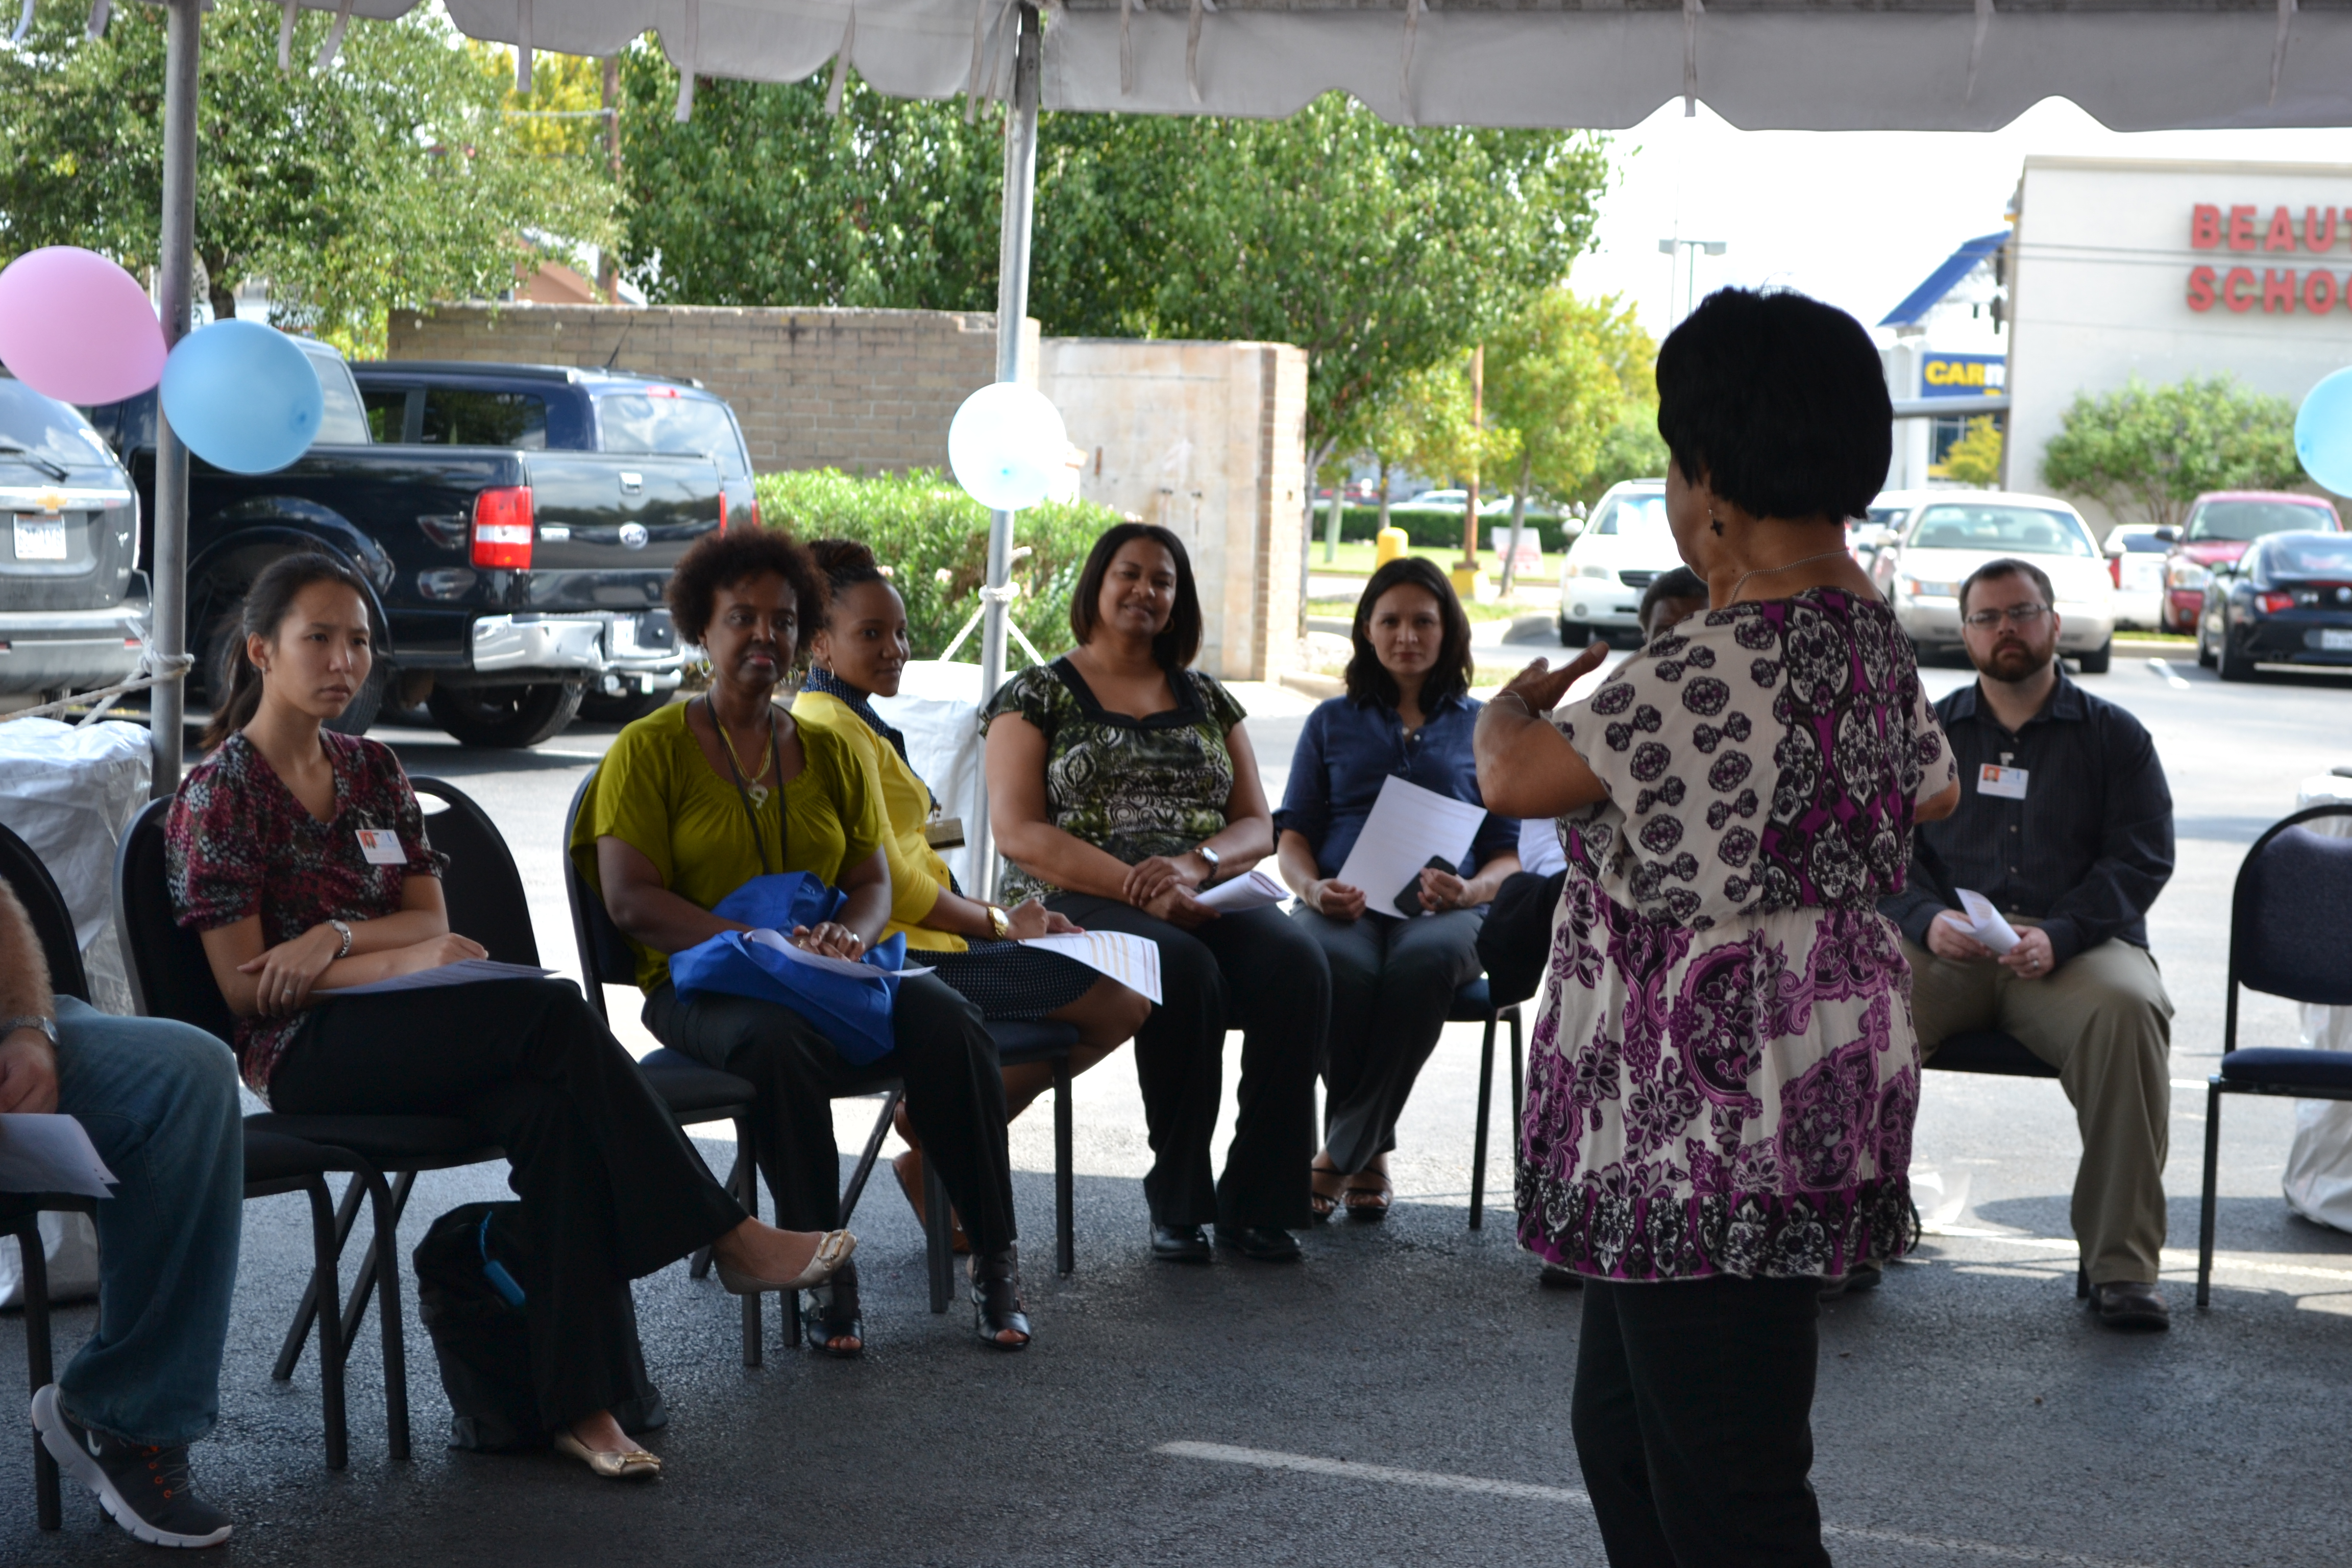 The Office of Outreach and Health Disparities seeks to increase awareness of cancer and cancer screening, understanding the vital role that outreach and involvement play in the community.